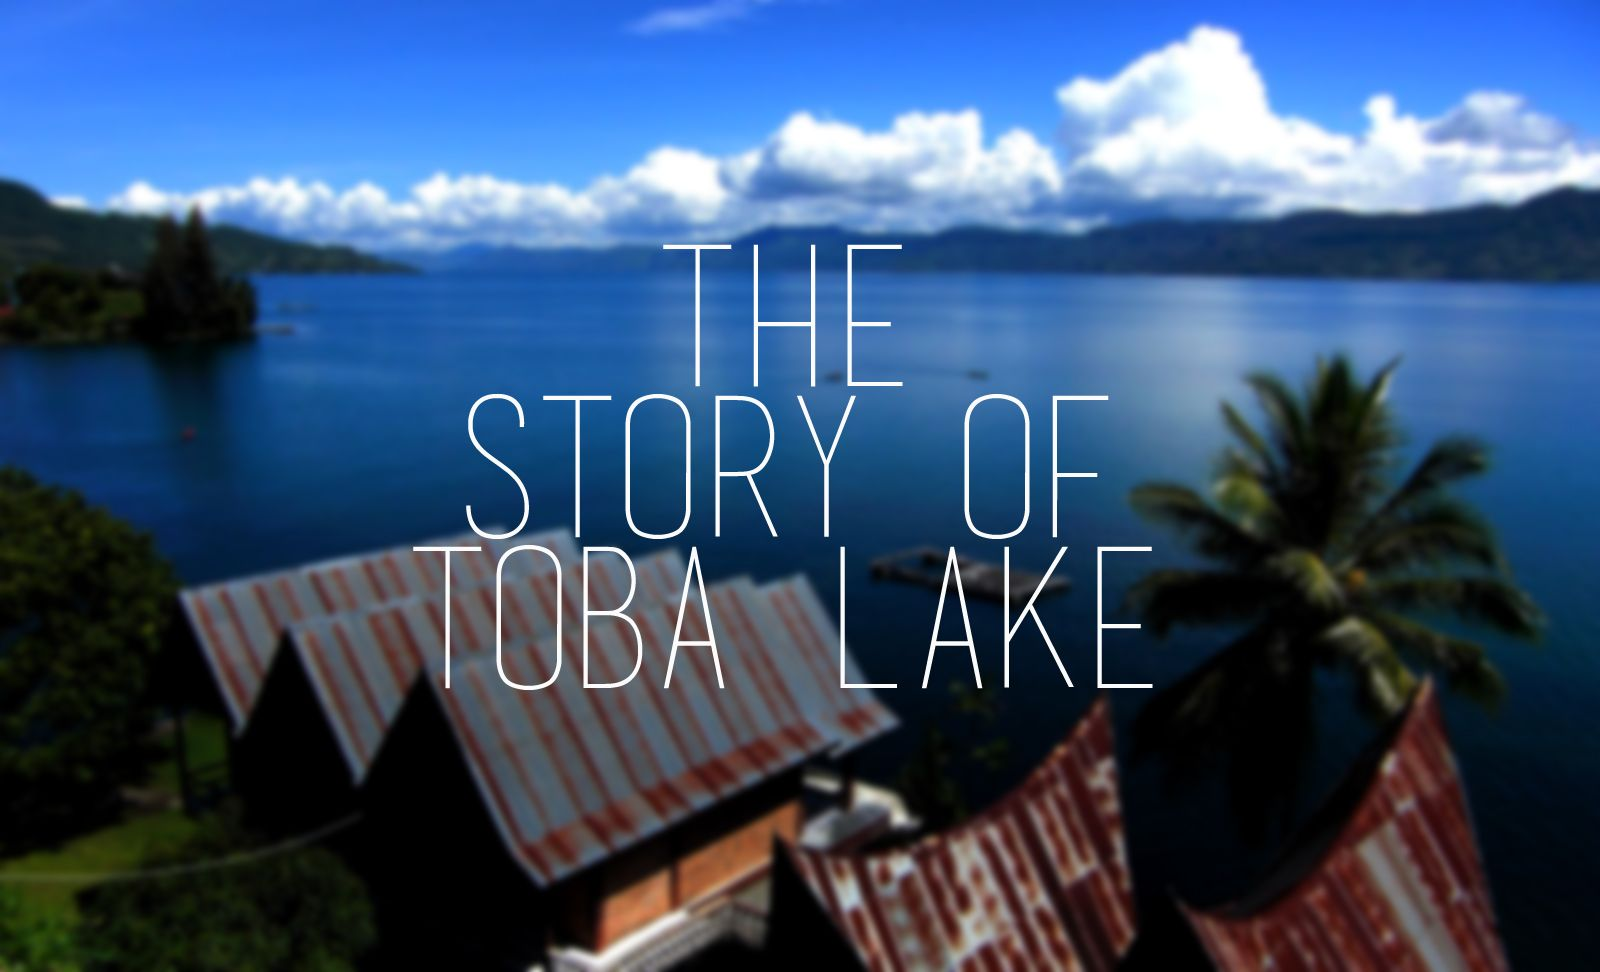 Contoh Narrative Text & Artinya The Story of Toba Lake